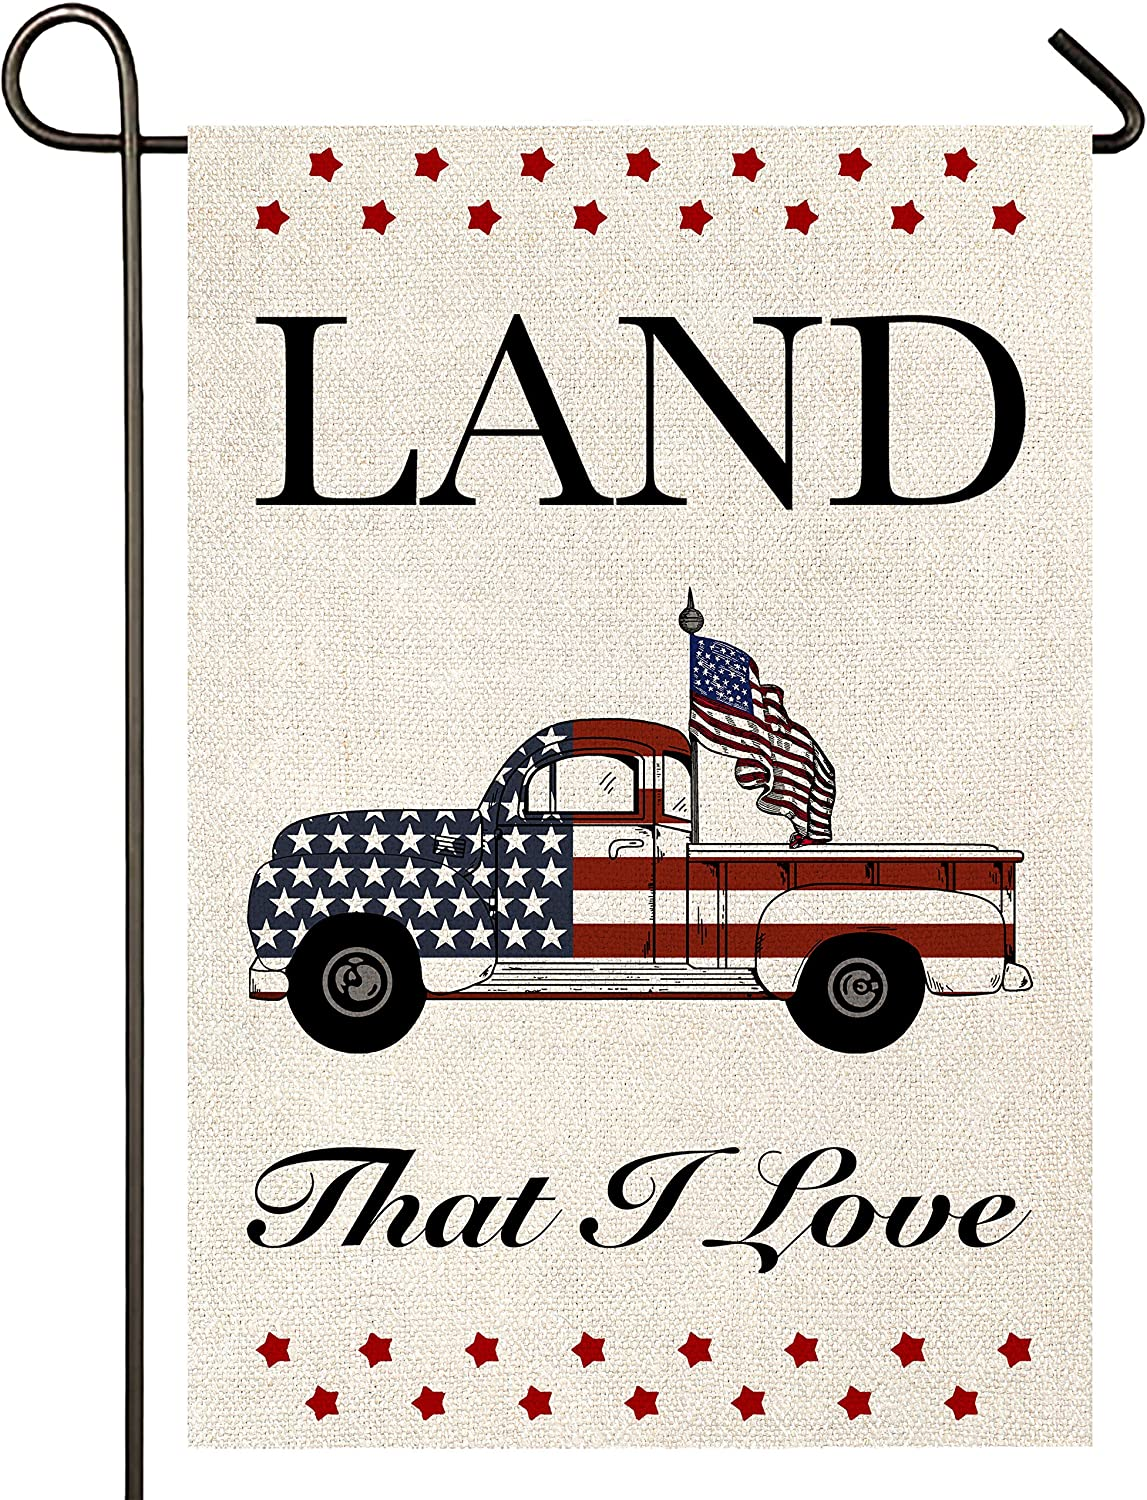 Atenia Burlap Garden Flag, Double Sided American Patriotic Garden Outdoor Yard Flags for 4th of July Decorations (Garden Size - 12.5X18)